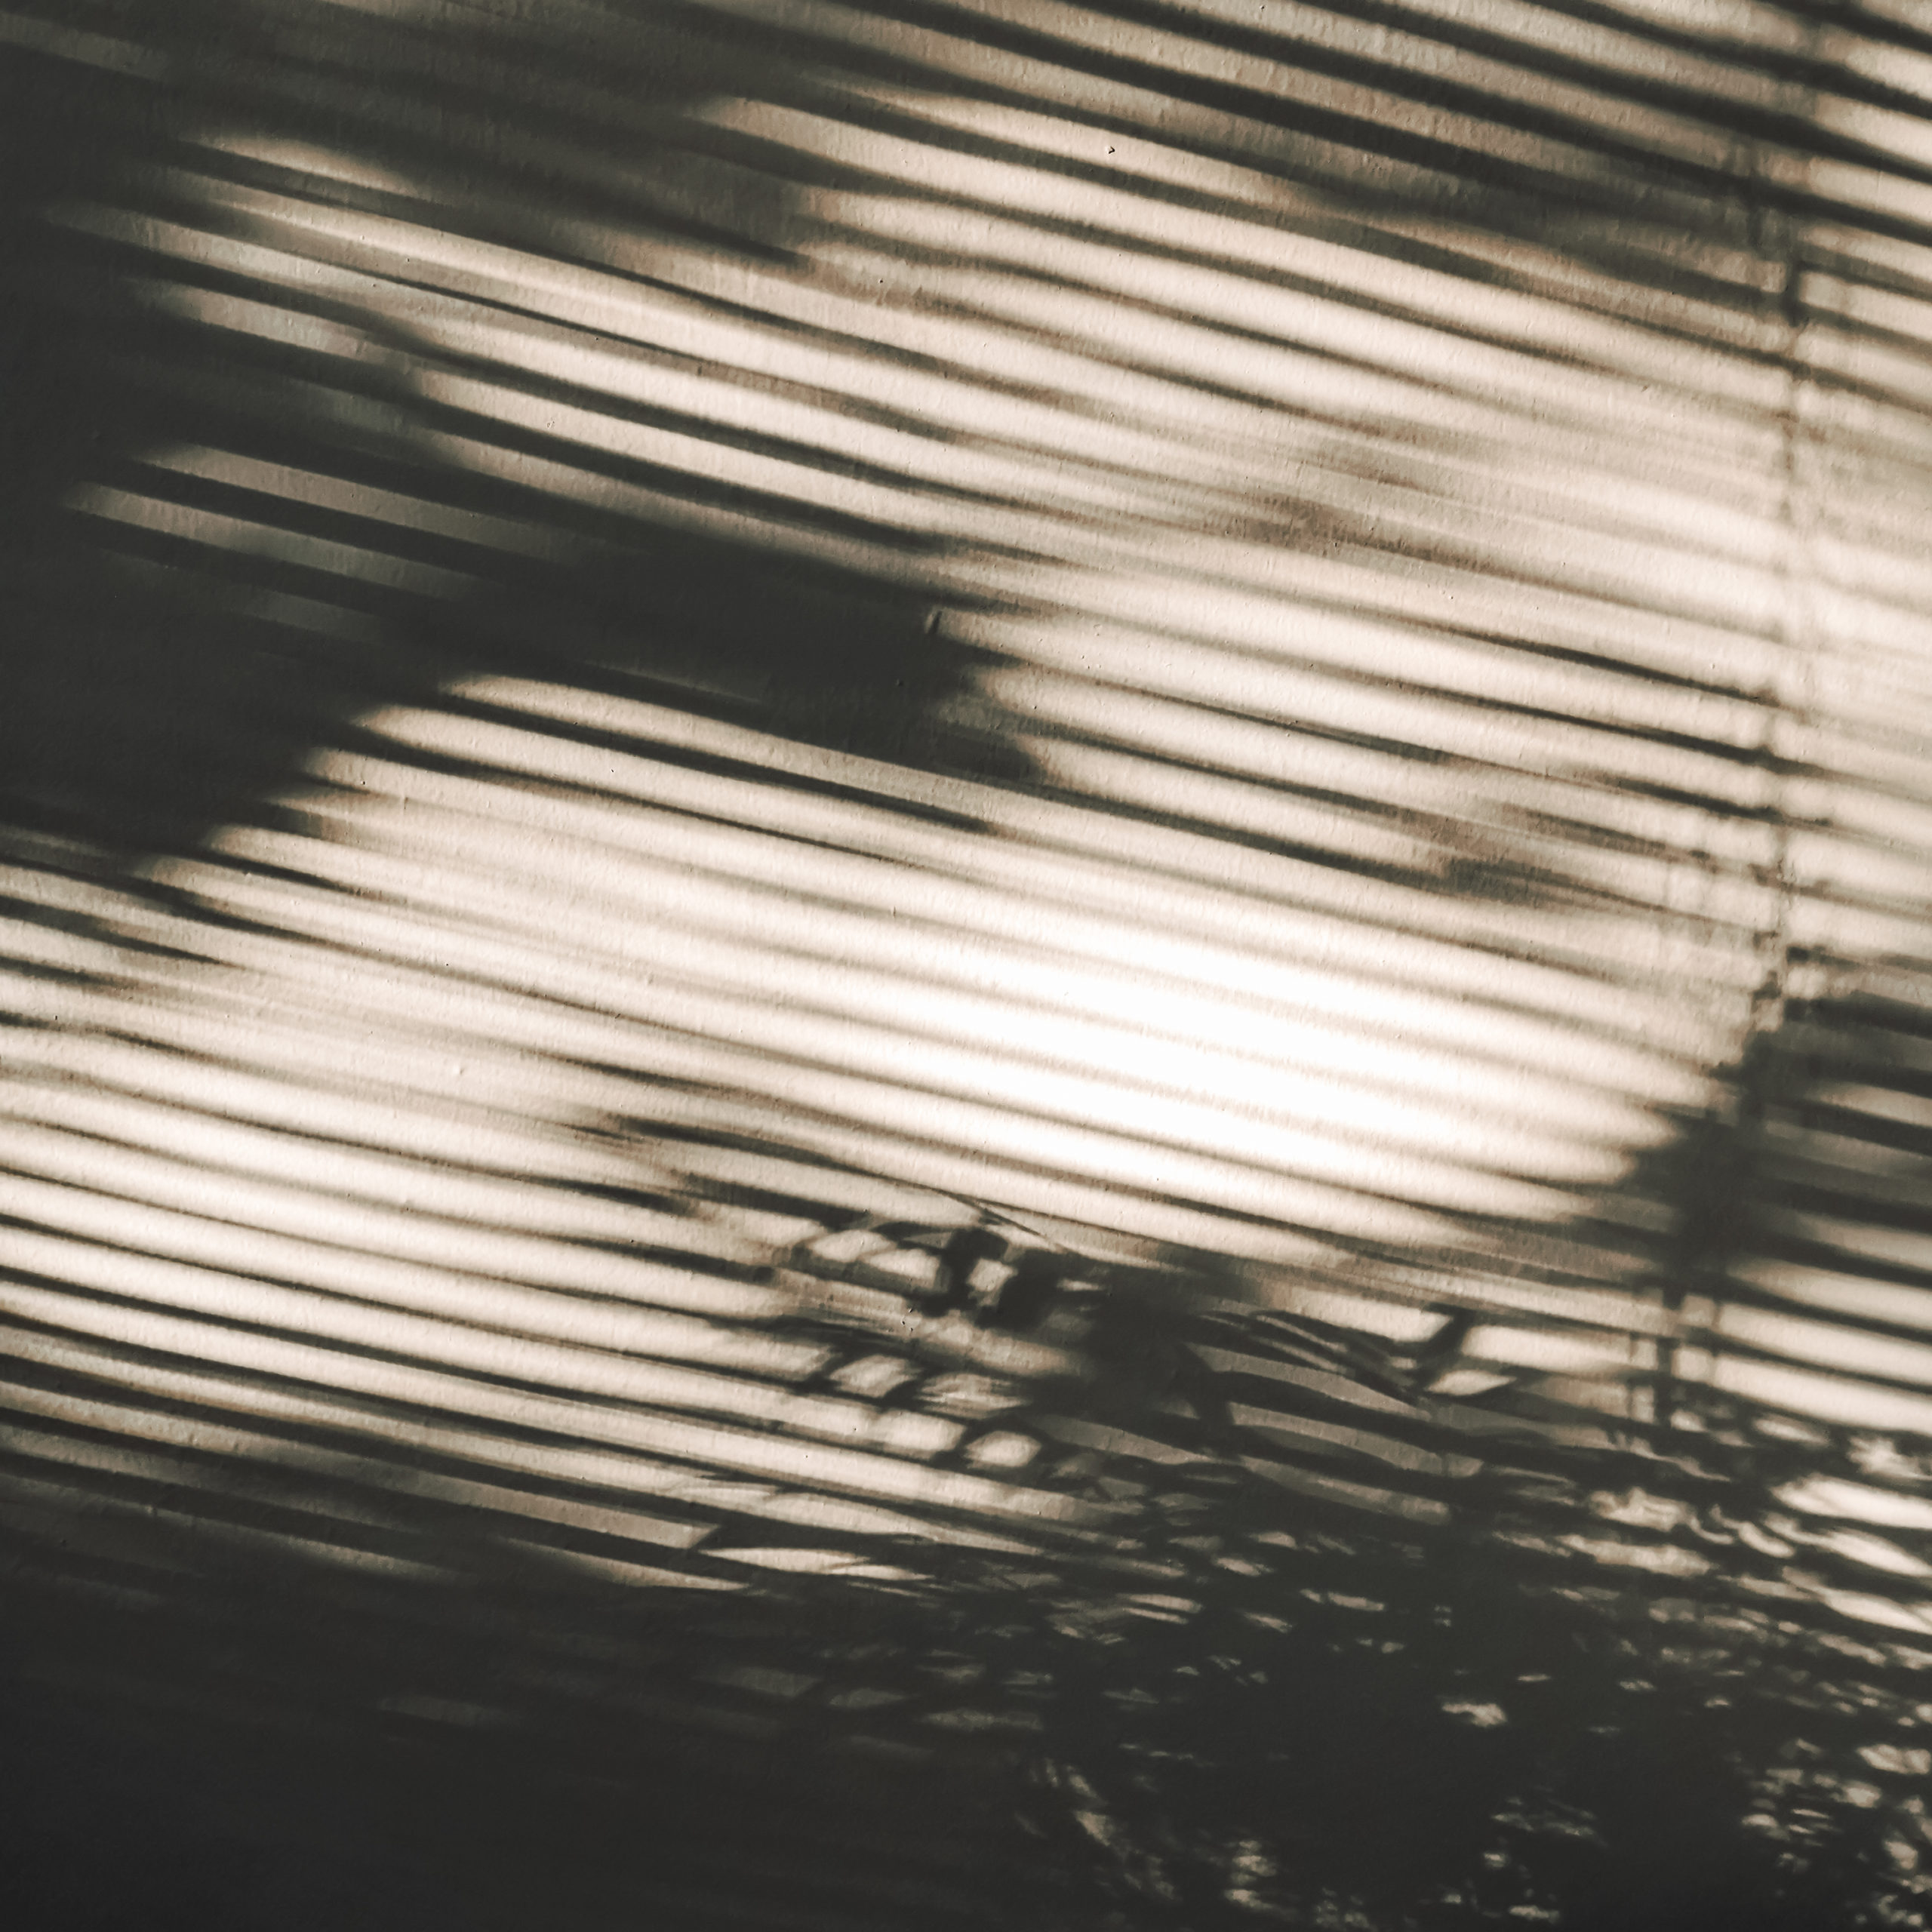 Shadows from the blinds.